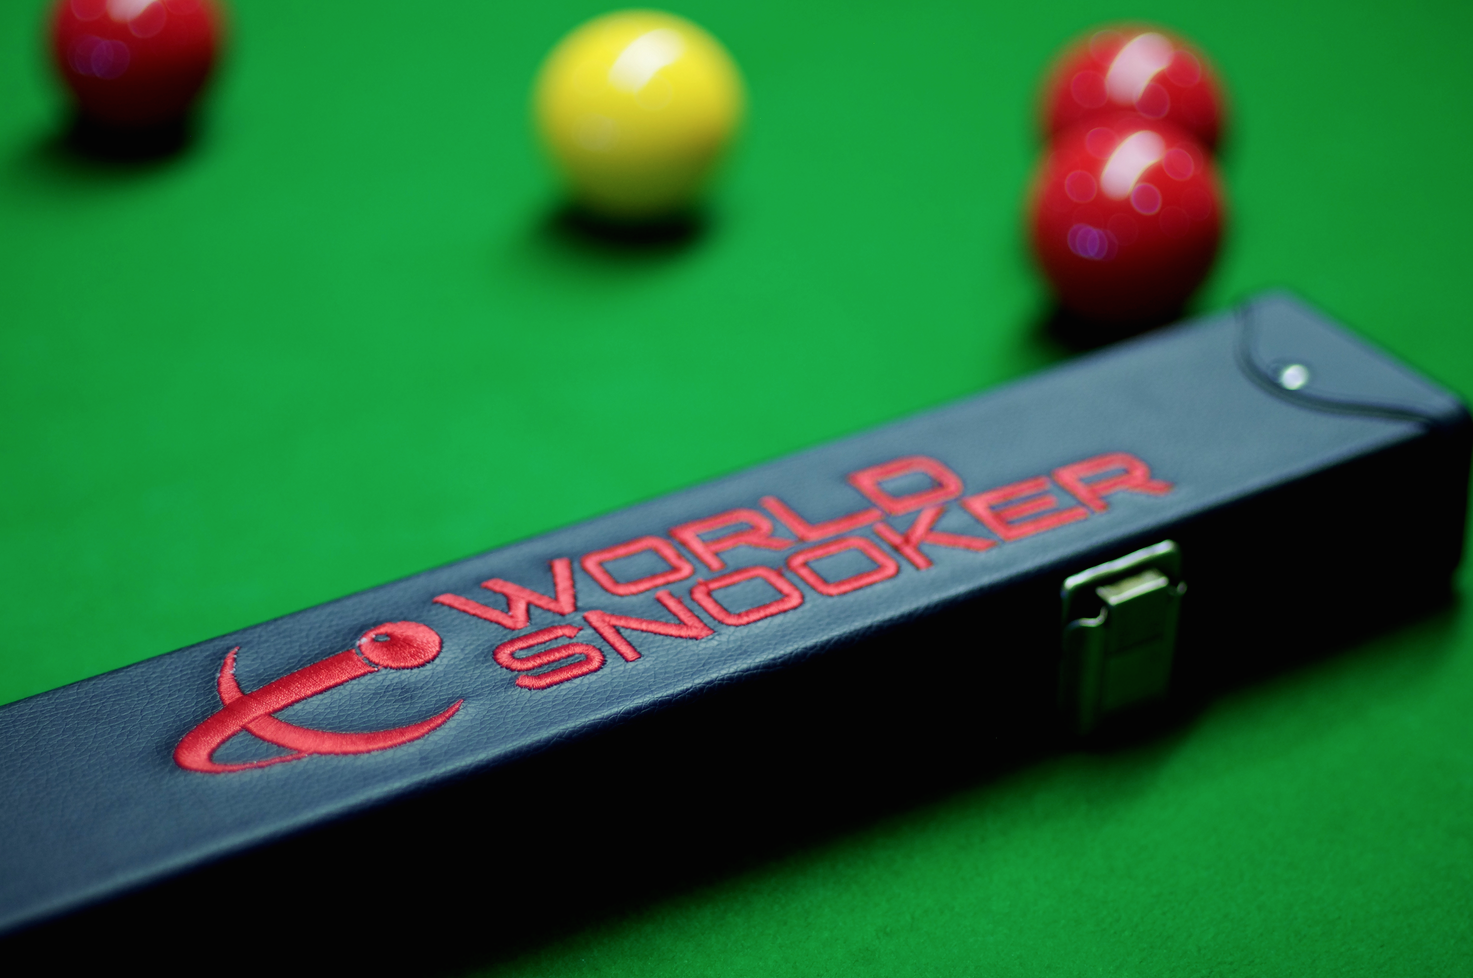 Hd wallpaper quotes for android - Home World Snooker Hd Wallpapers